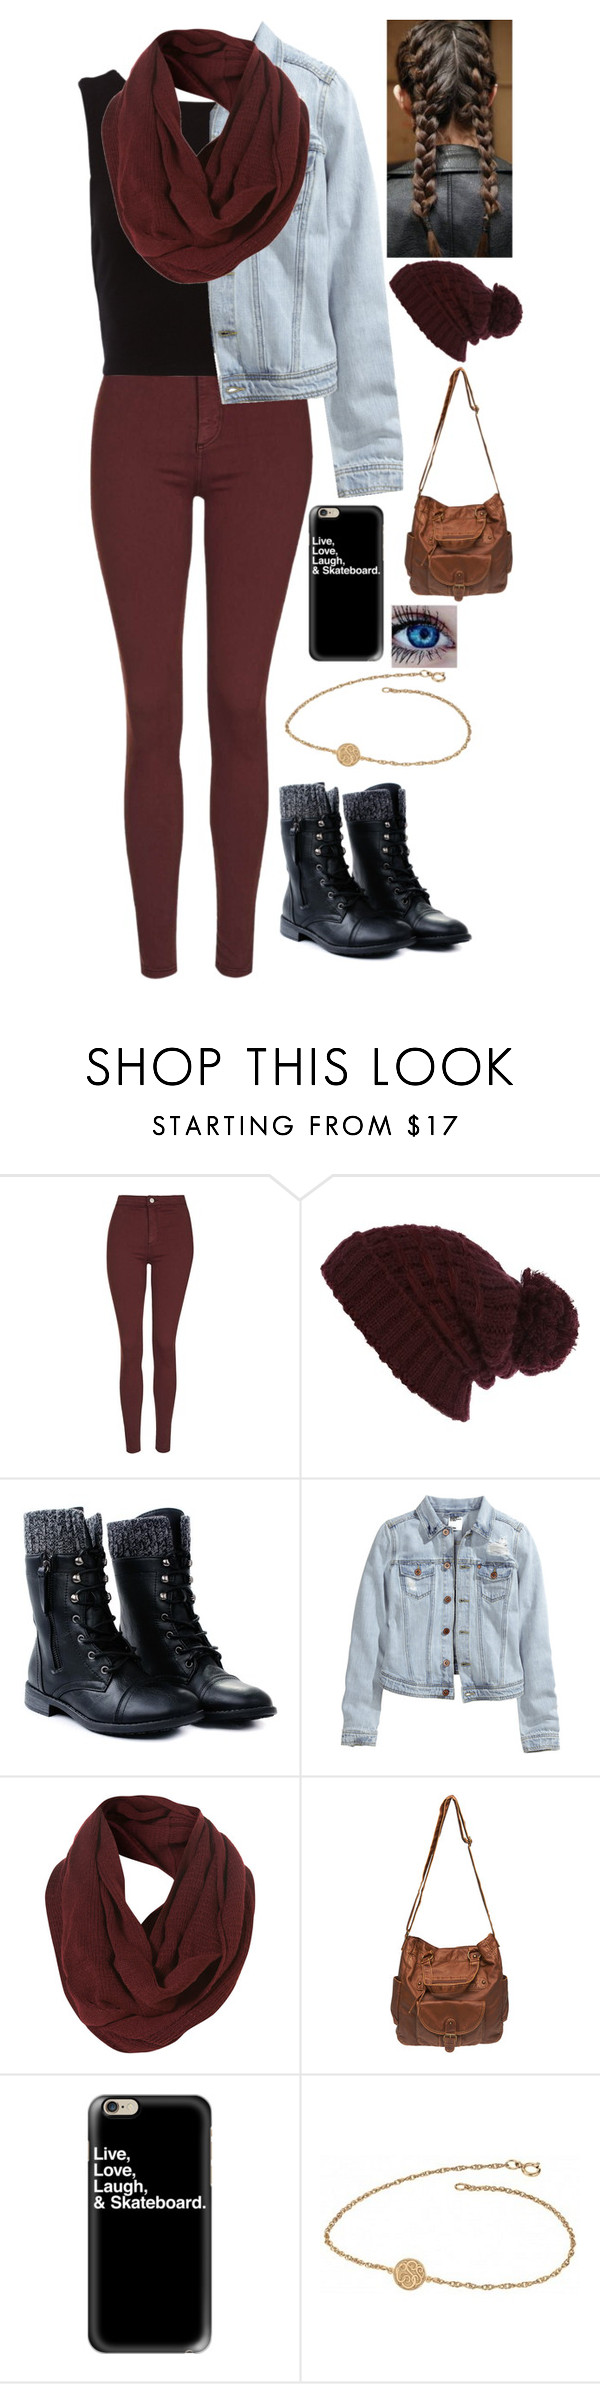 """Untitled #434"" by lifeasgege on Polyvore featuring Topshop, River Island, H&M, Topman, Wet Seal, Casetify and Alison & Ivy"